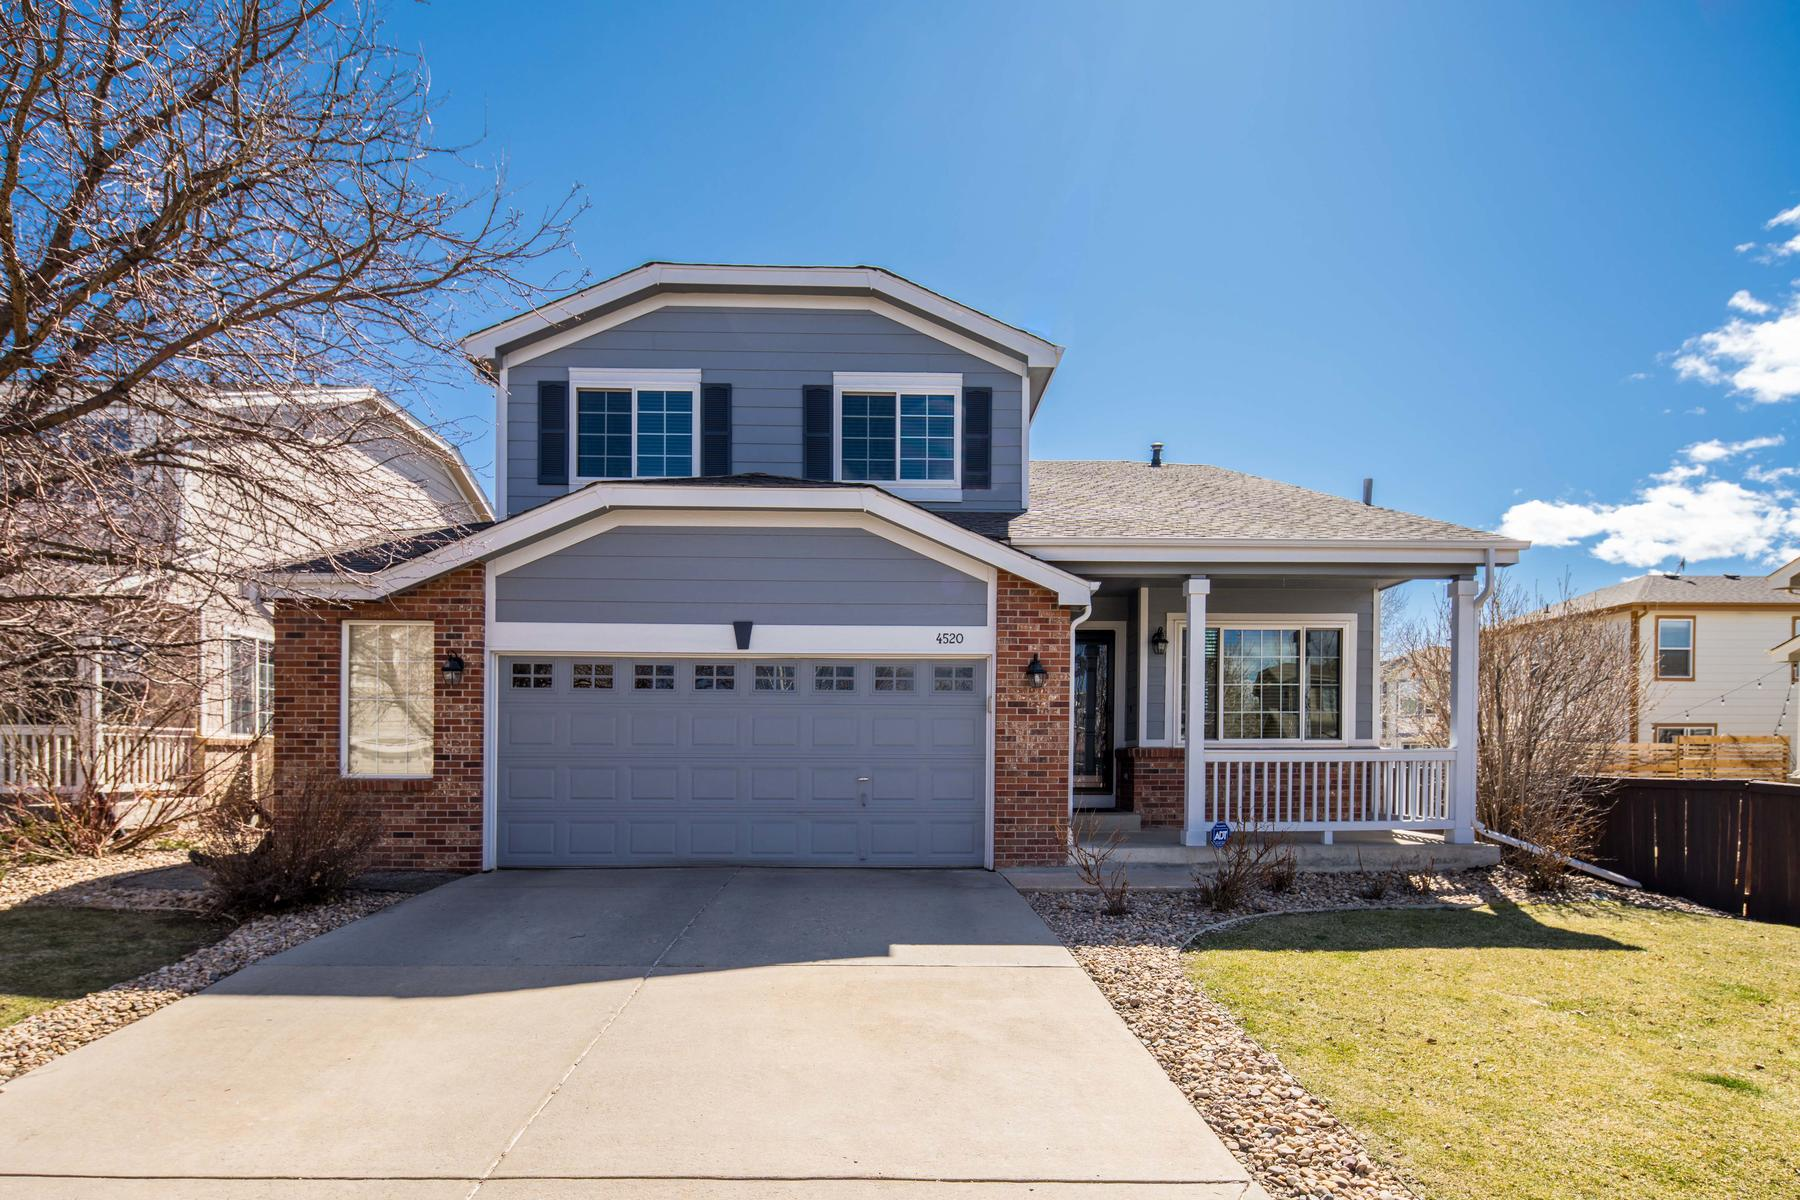 Single Family Homes のために 売買 アット Welcome To Your Future Home In The Broadlands 4520 Lexi Cir Broomfield, コロラド 80023 アメリカ